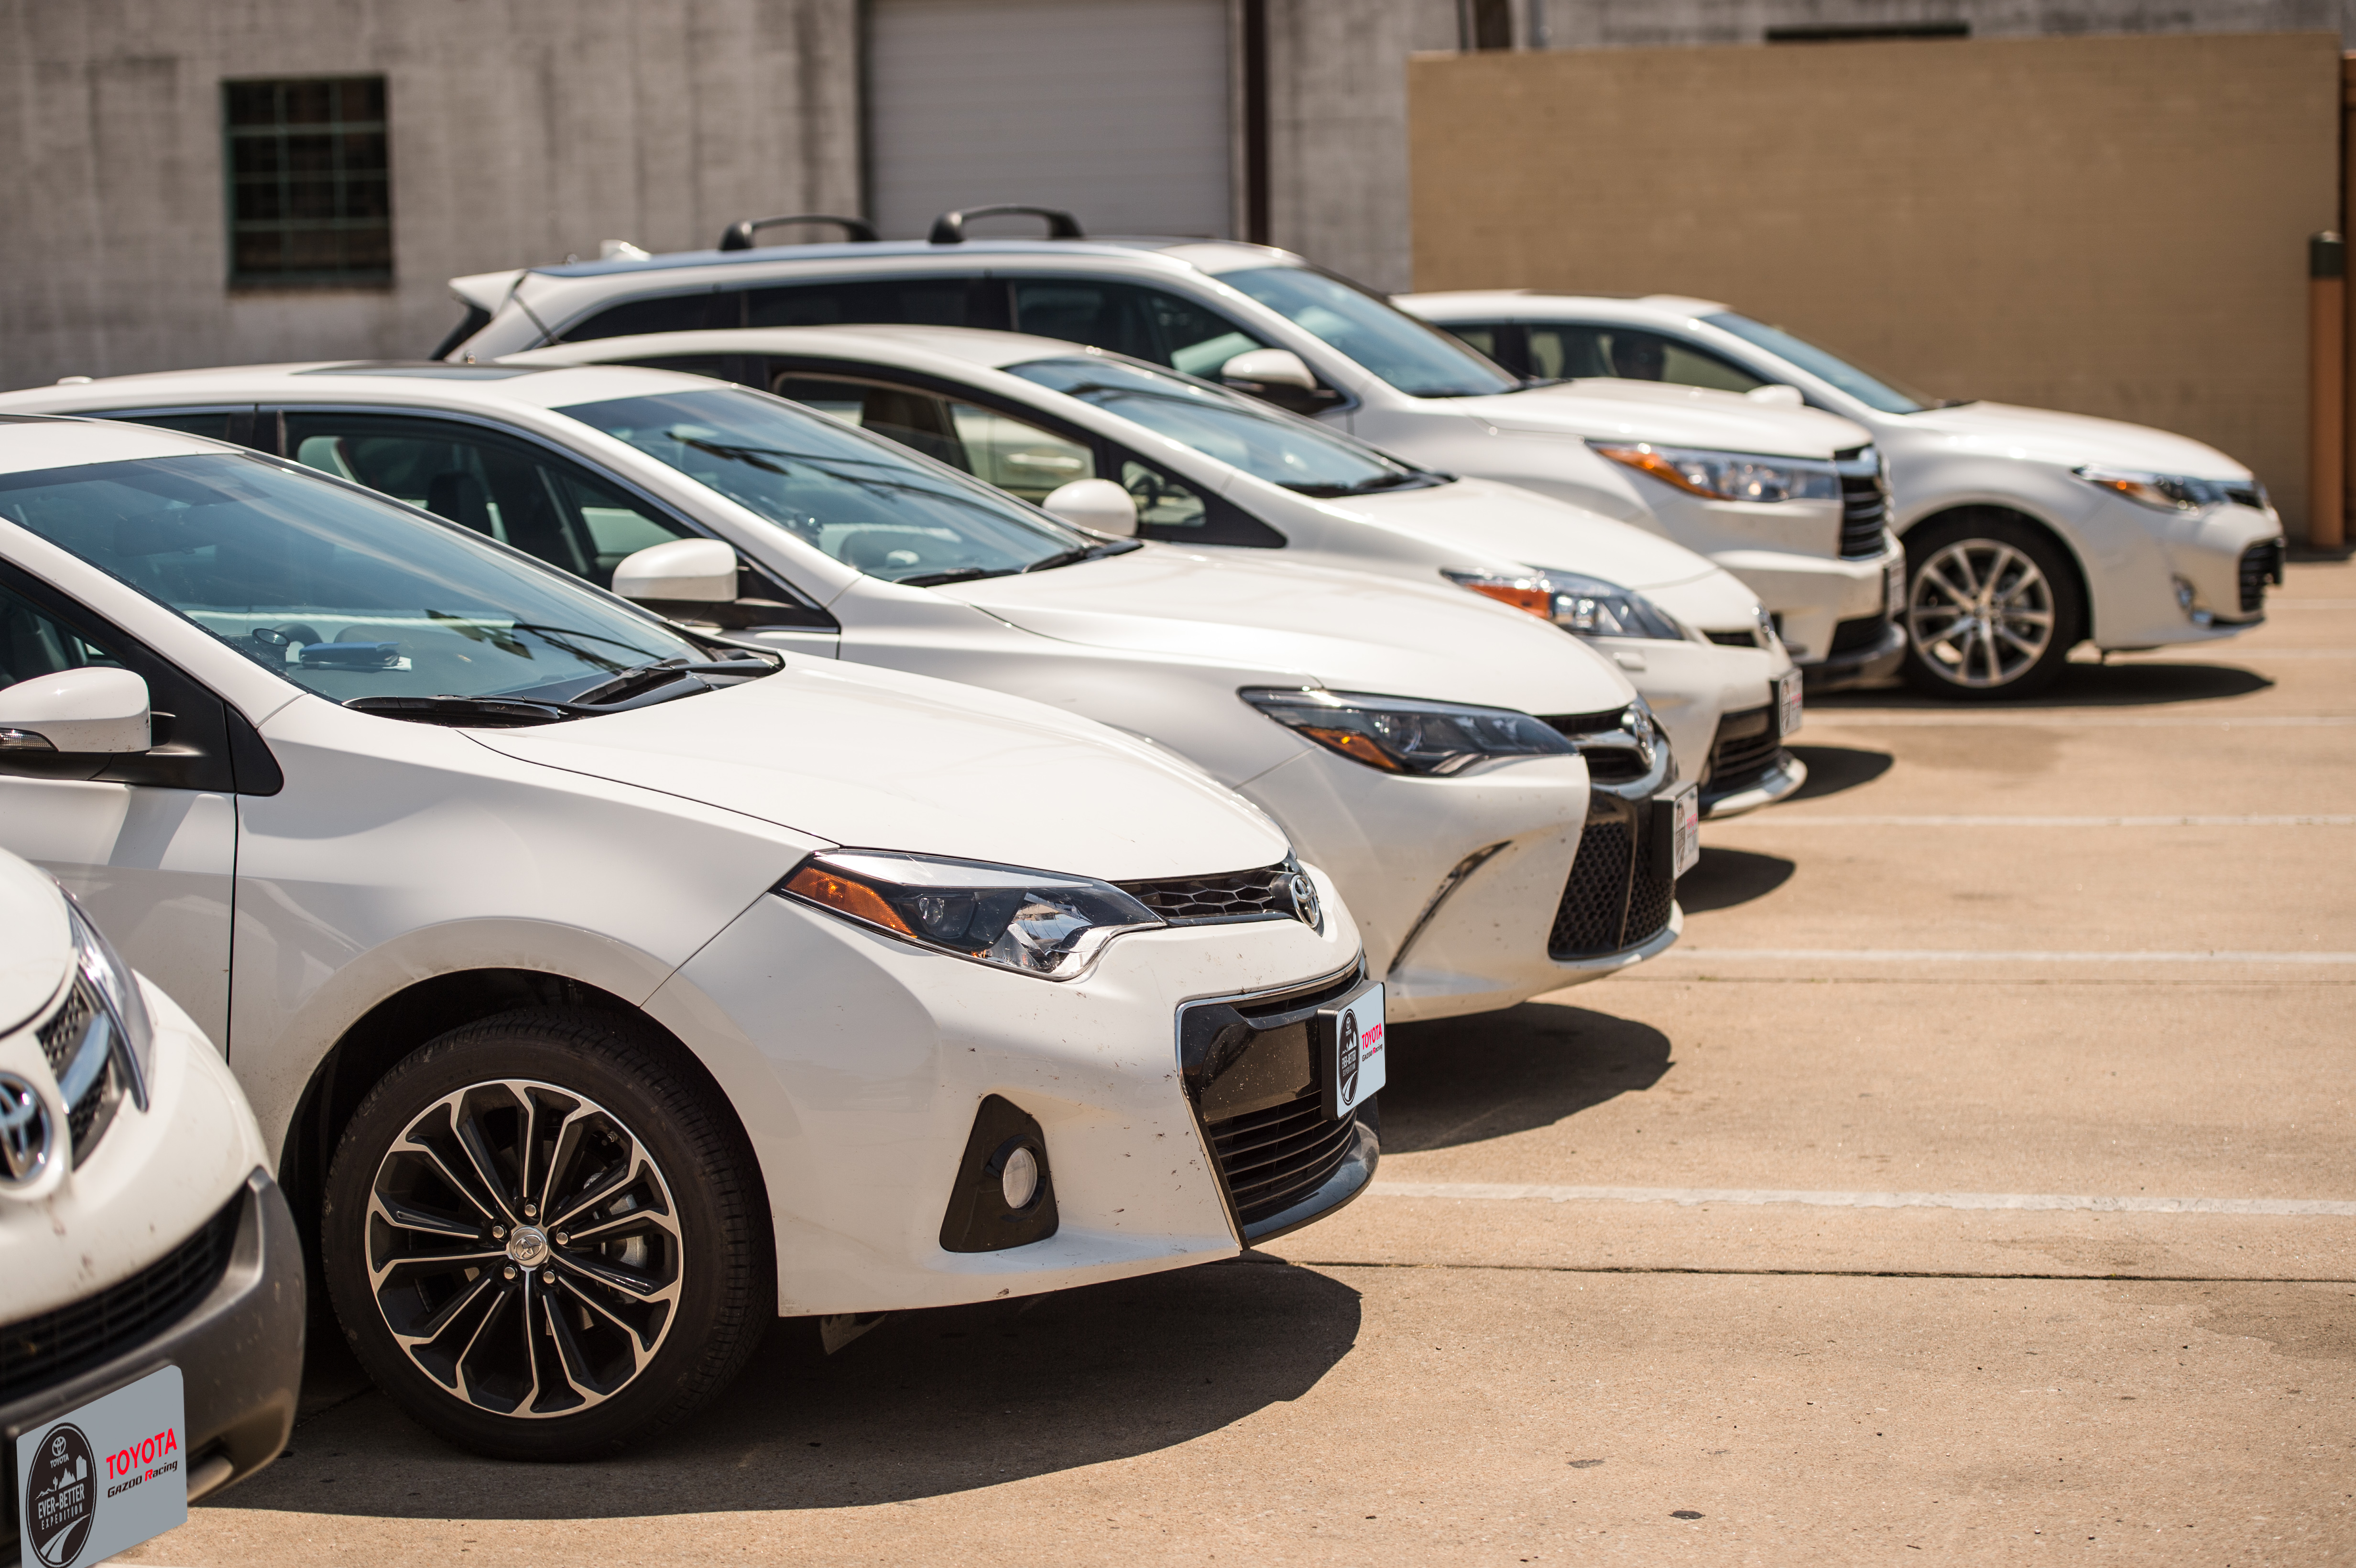 Find A Used Toyota Model At Your Local St Charles Mo Dealership